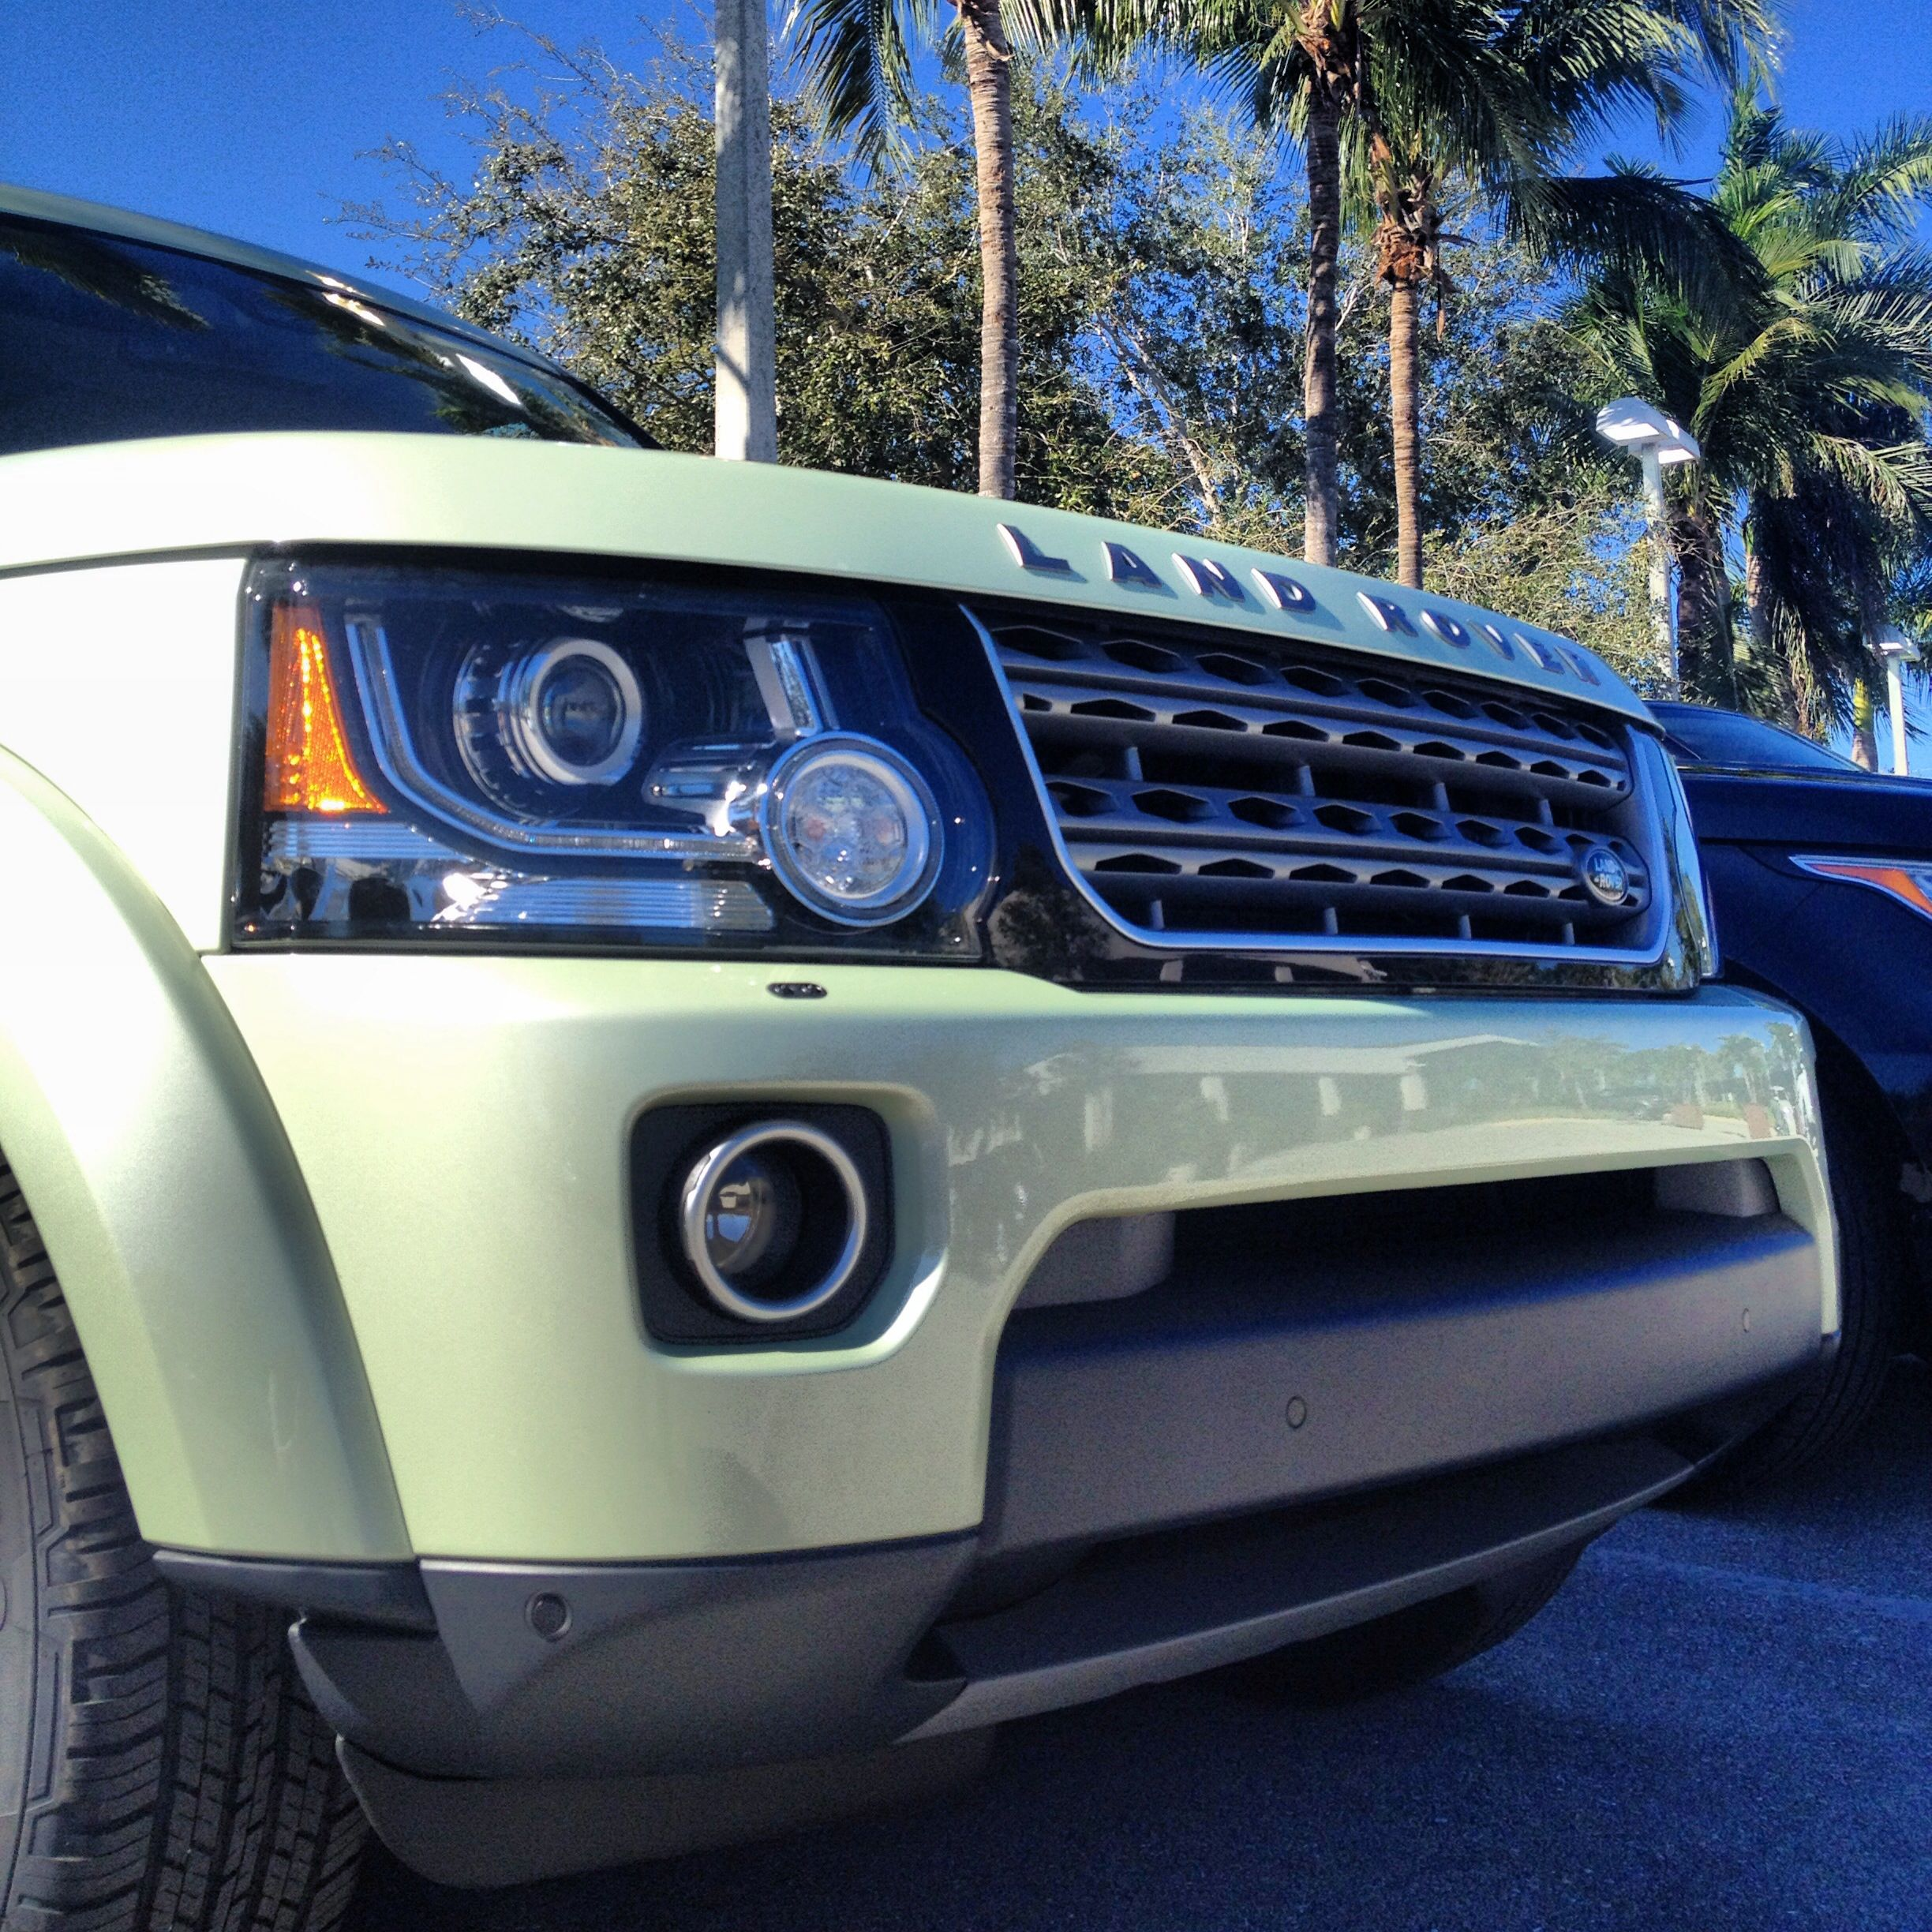 for the is a sale land defender works in htm landrover october orlando blog new rover